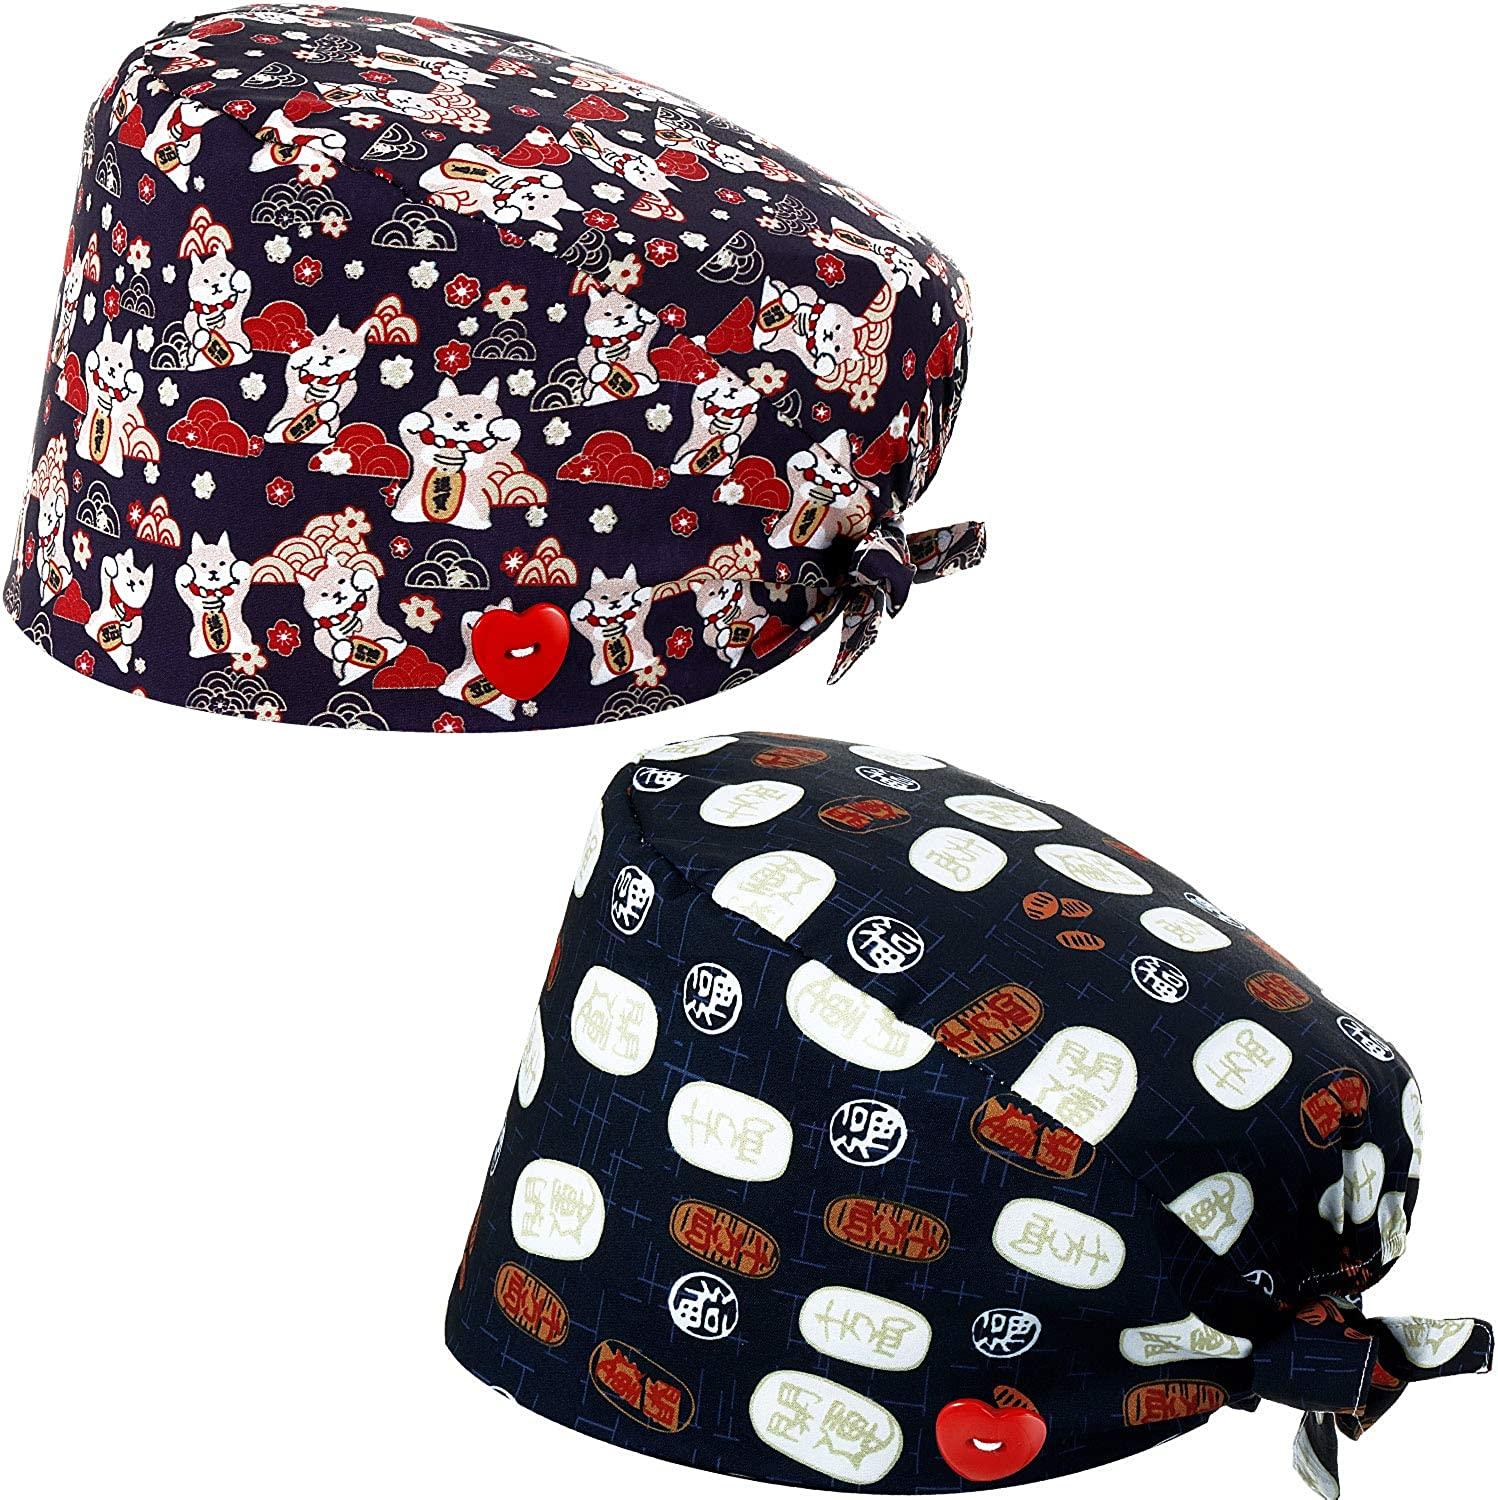 2 Pieces Scrub Caps with Button Sweatband Working Caps Adjustable Turban Bouffant Hats Printed Hair Covers for Women Men